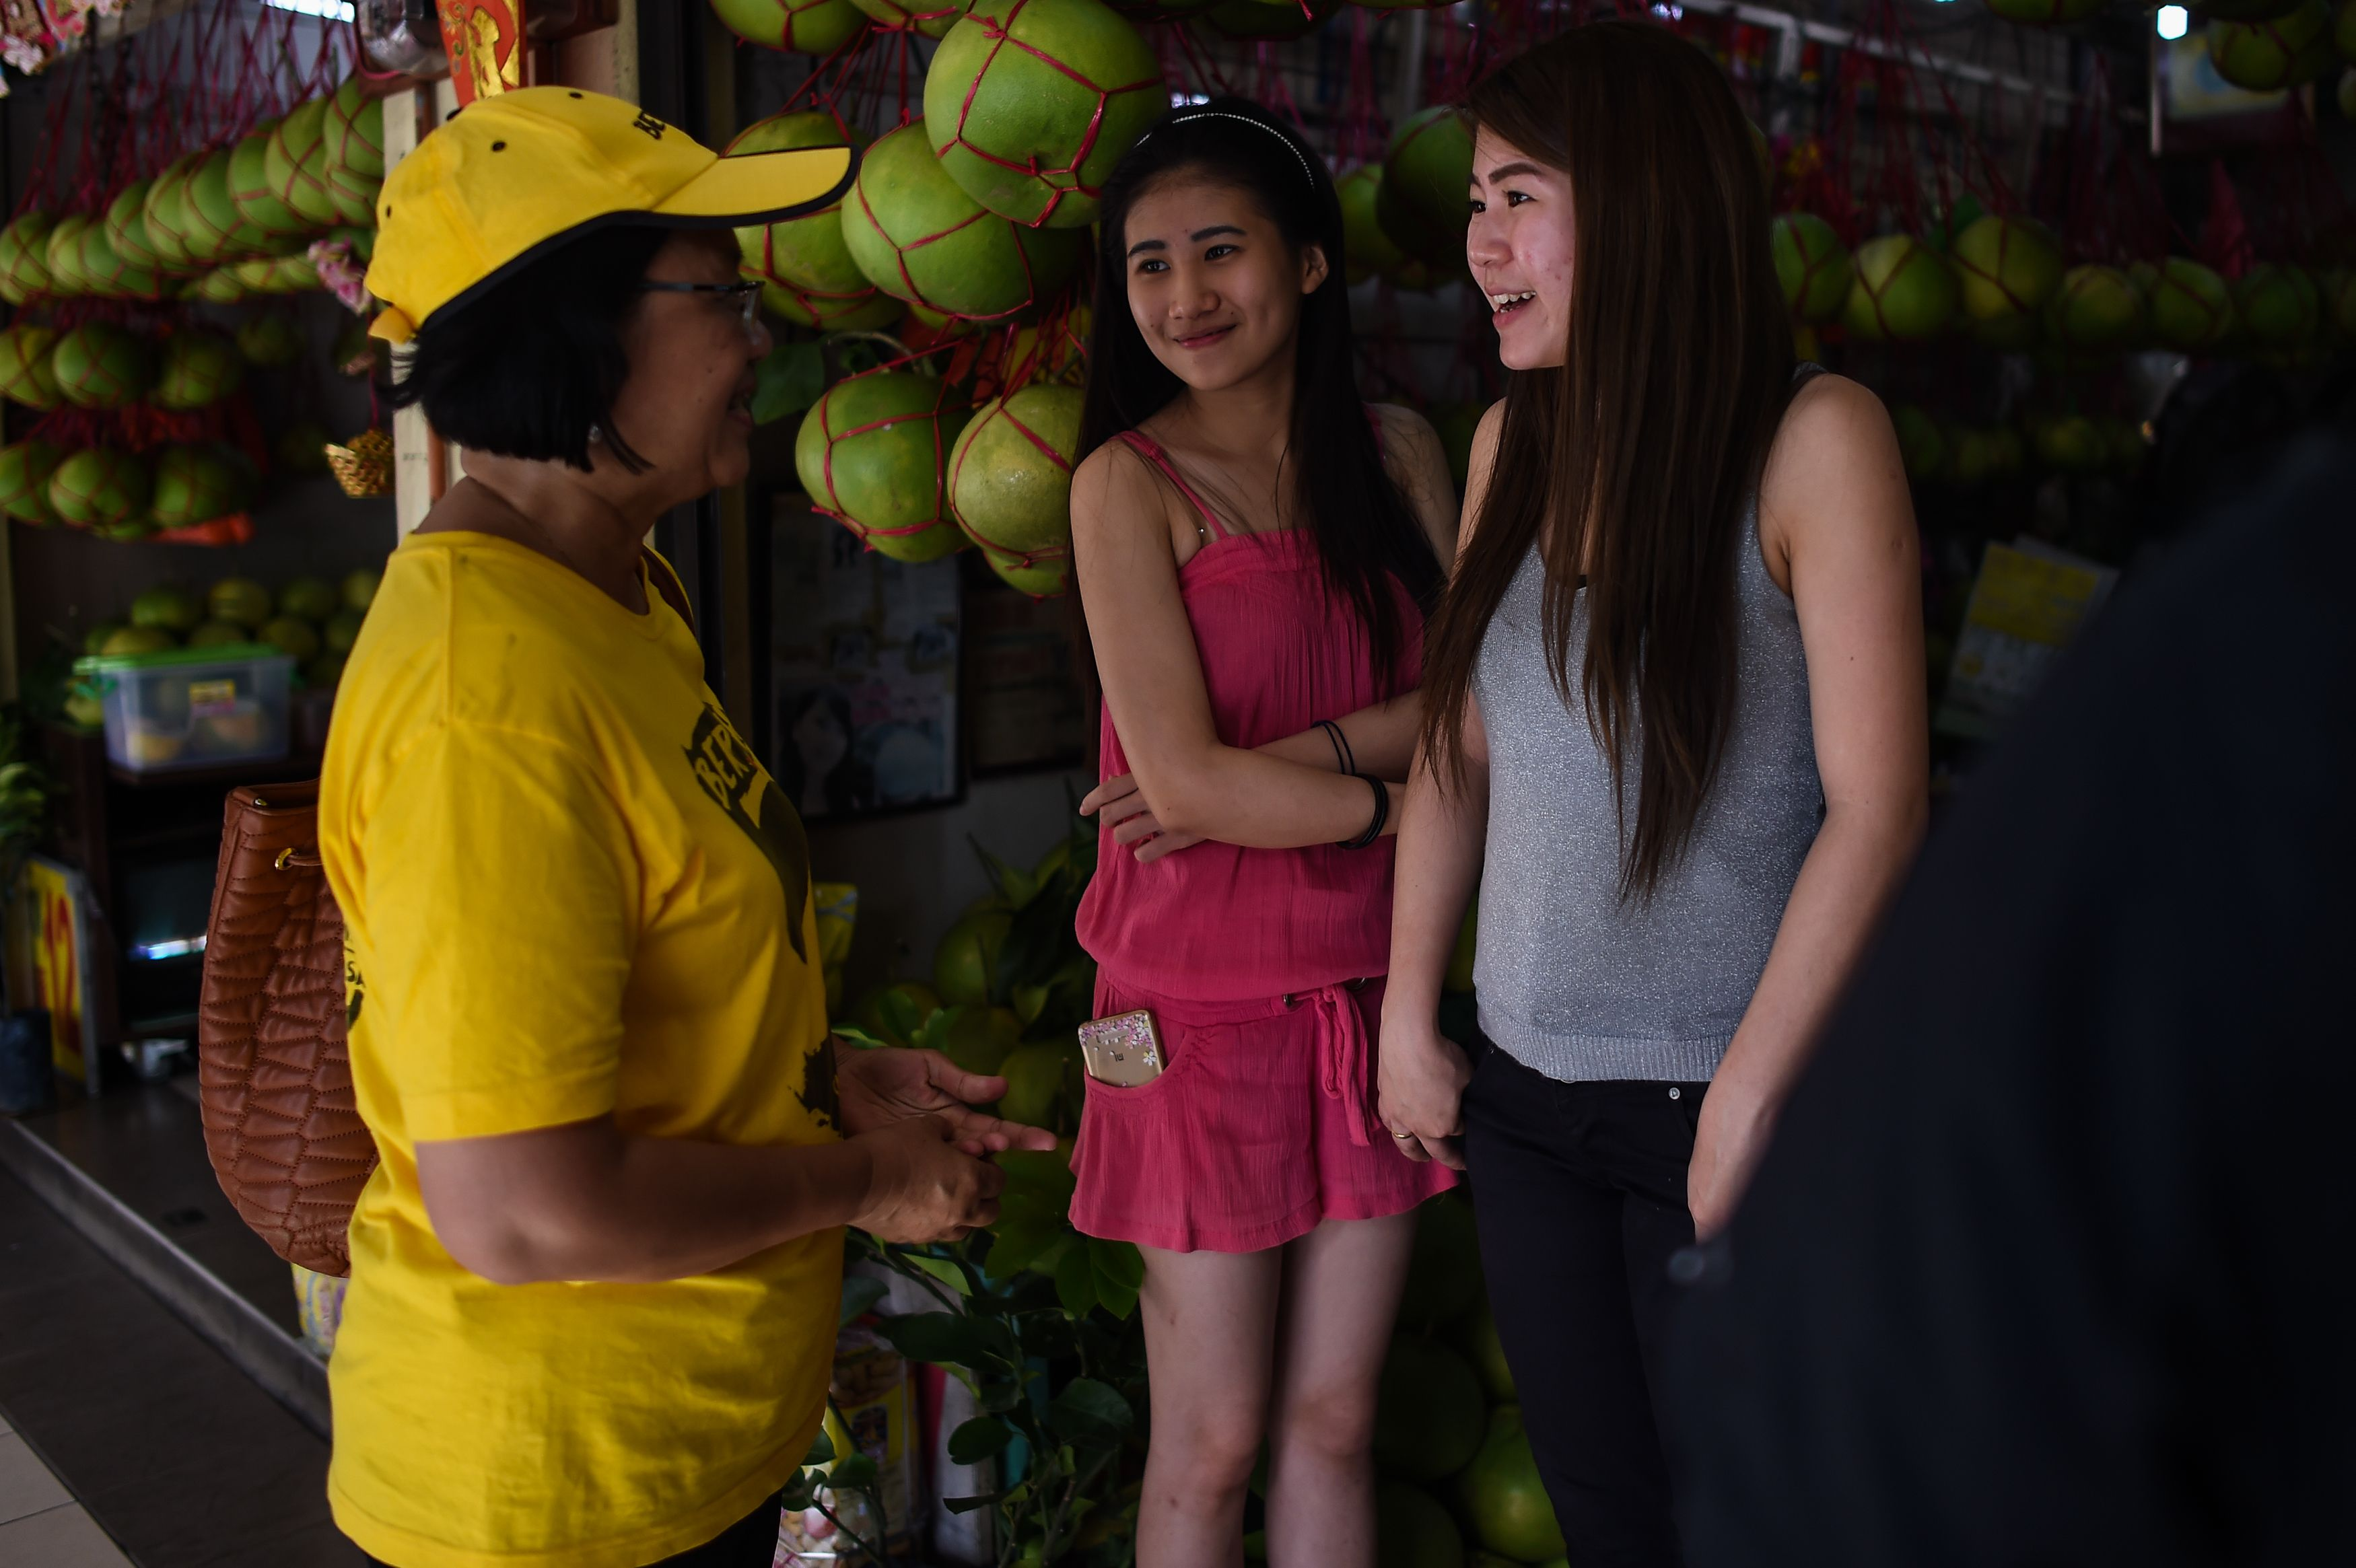 Maria Chin Abdullah, left, chair of civil-society alliance Bersih talks door-to-door and canvasses in the Malaysian town of Ipoh on Nov. 11, 2016, ahead of Bersih's demonstration in the capital Kuala Lumpur to demand Malaysian Prime Minister Najib's resignation